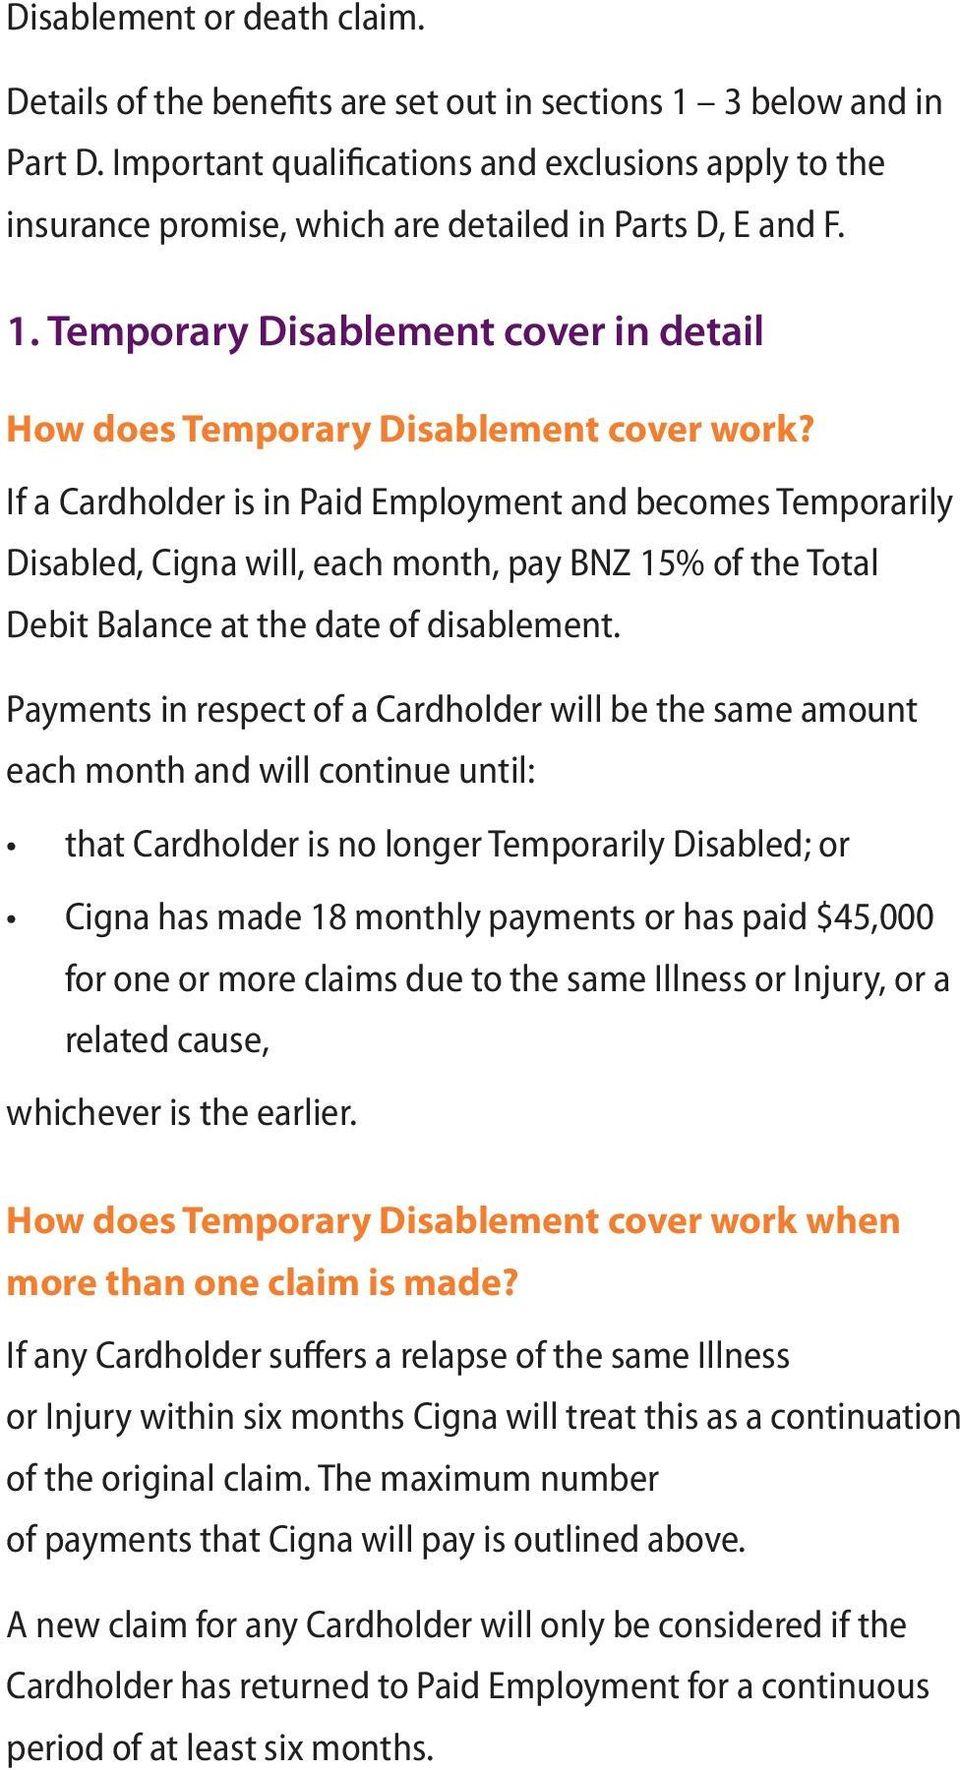 If a Cardholder is in Paid Employment and becomes Temporarily Disabled, Cigna will, each month, pay BNZ 15% of the Total Debit Balance at the date of disablement.